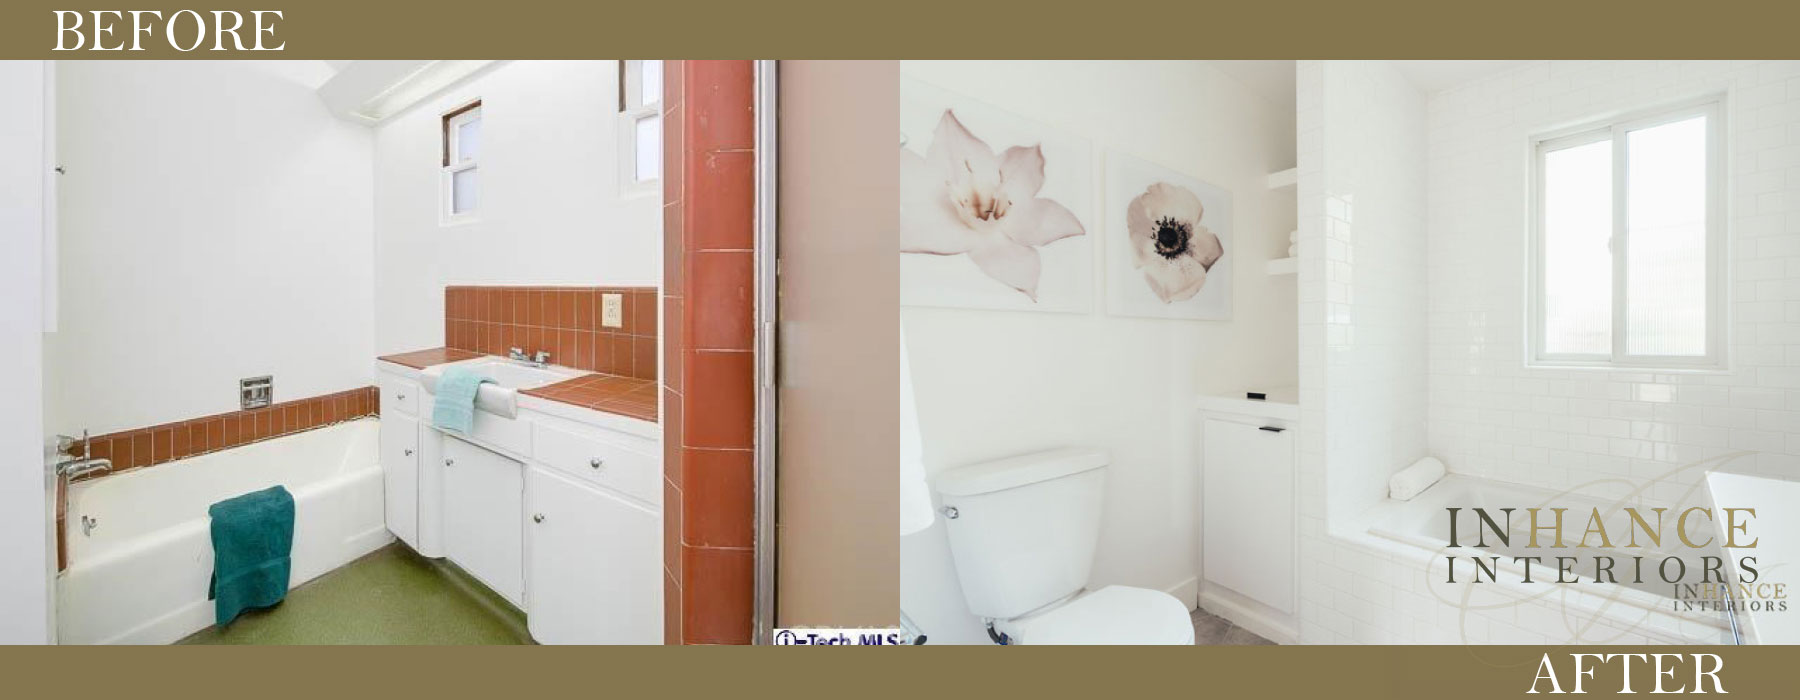 Sequoia_Before-and-After_Side-Bathroom.jpg